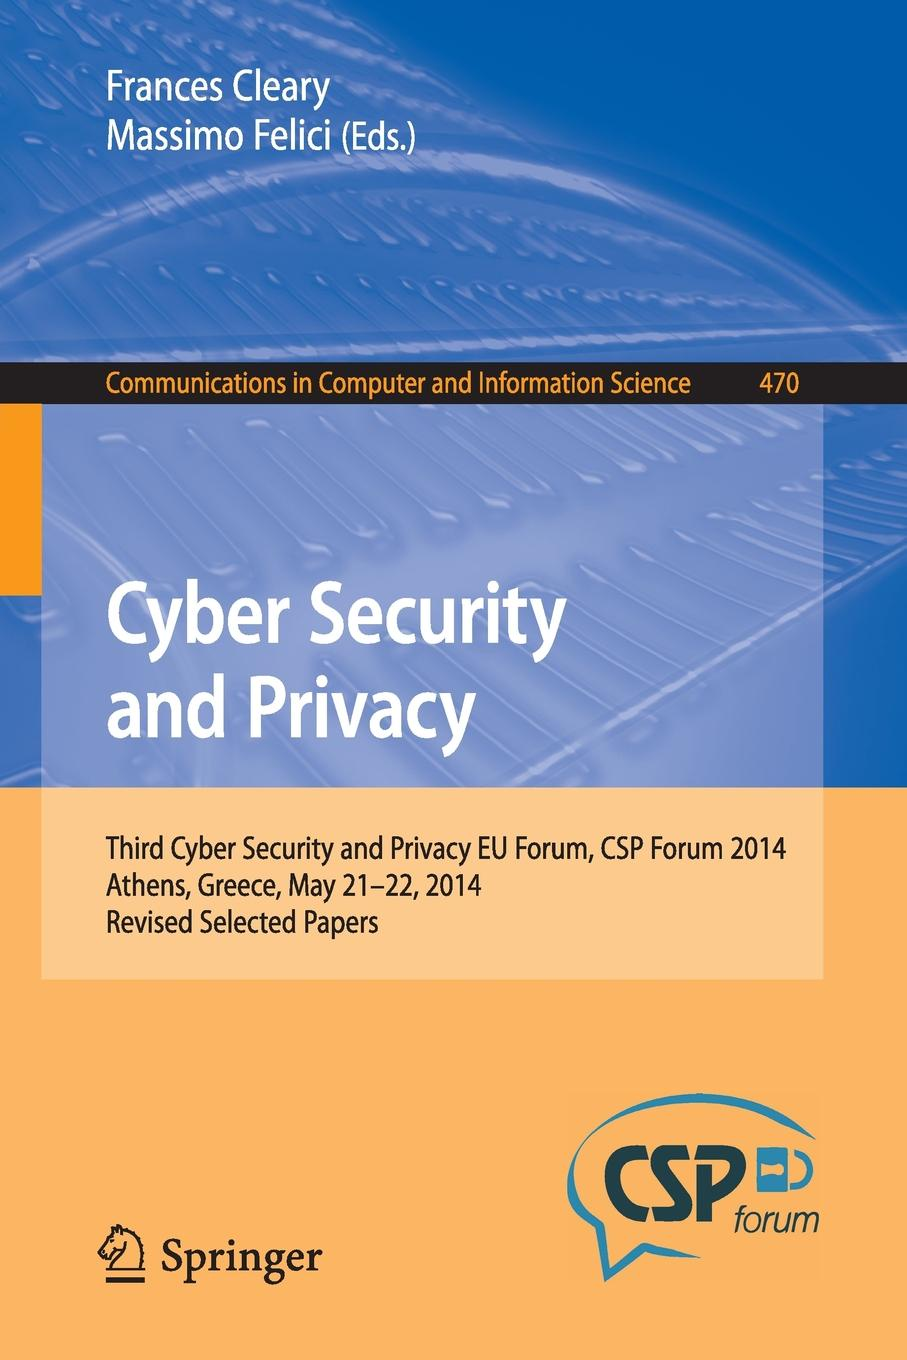 Cyber Security and Privacy. Third Cyber Security and Privacy EU Forum, CSP Forum 2014, Athens, Greece, May 21-22, 2014, Revised Selected Papers forum